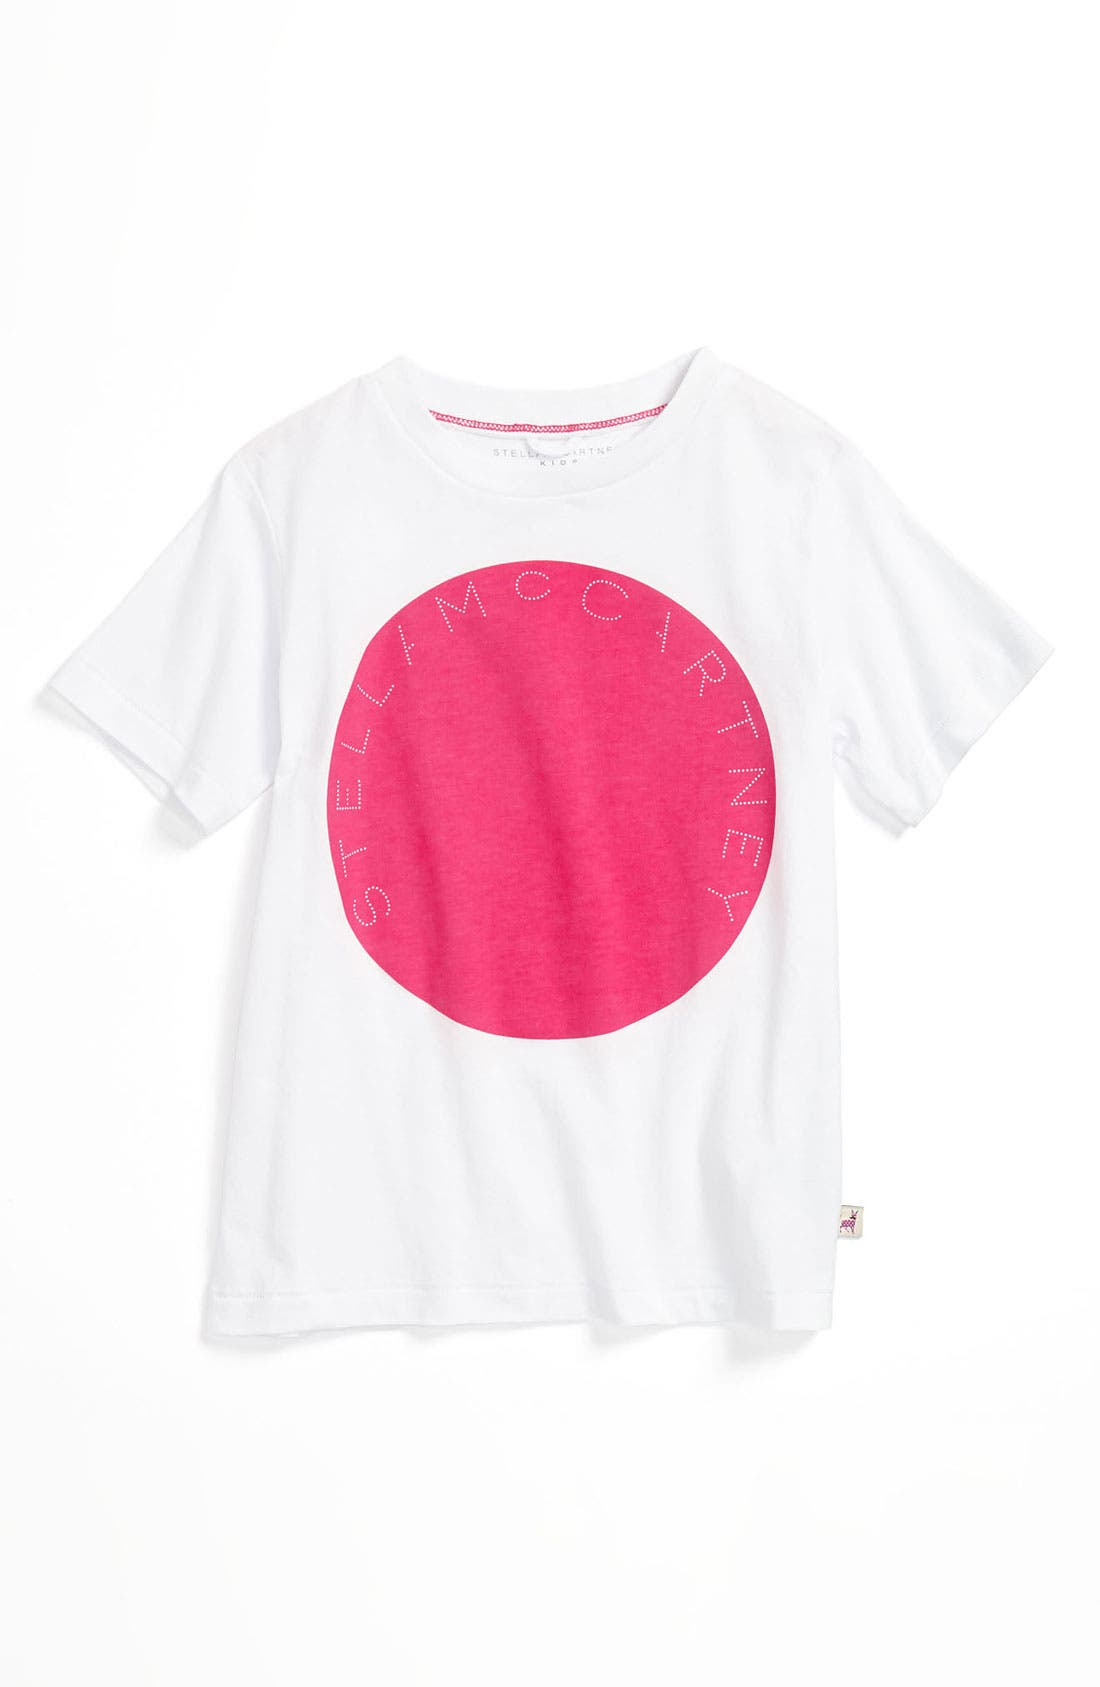 Main Image - Stella McCartney Kids 'Lawson' Tee (Toddler, Little Girls & Big Girls)